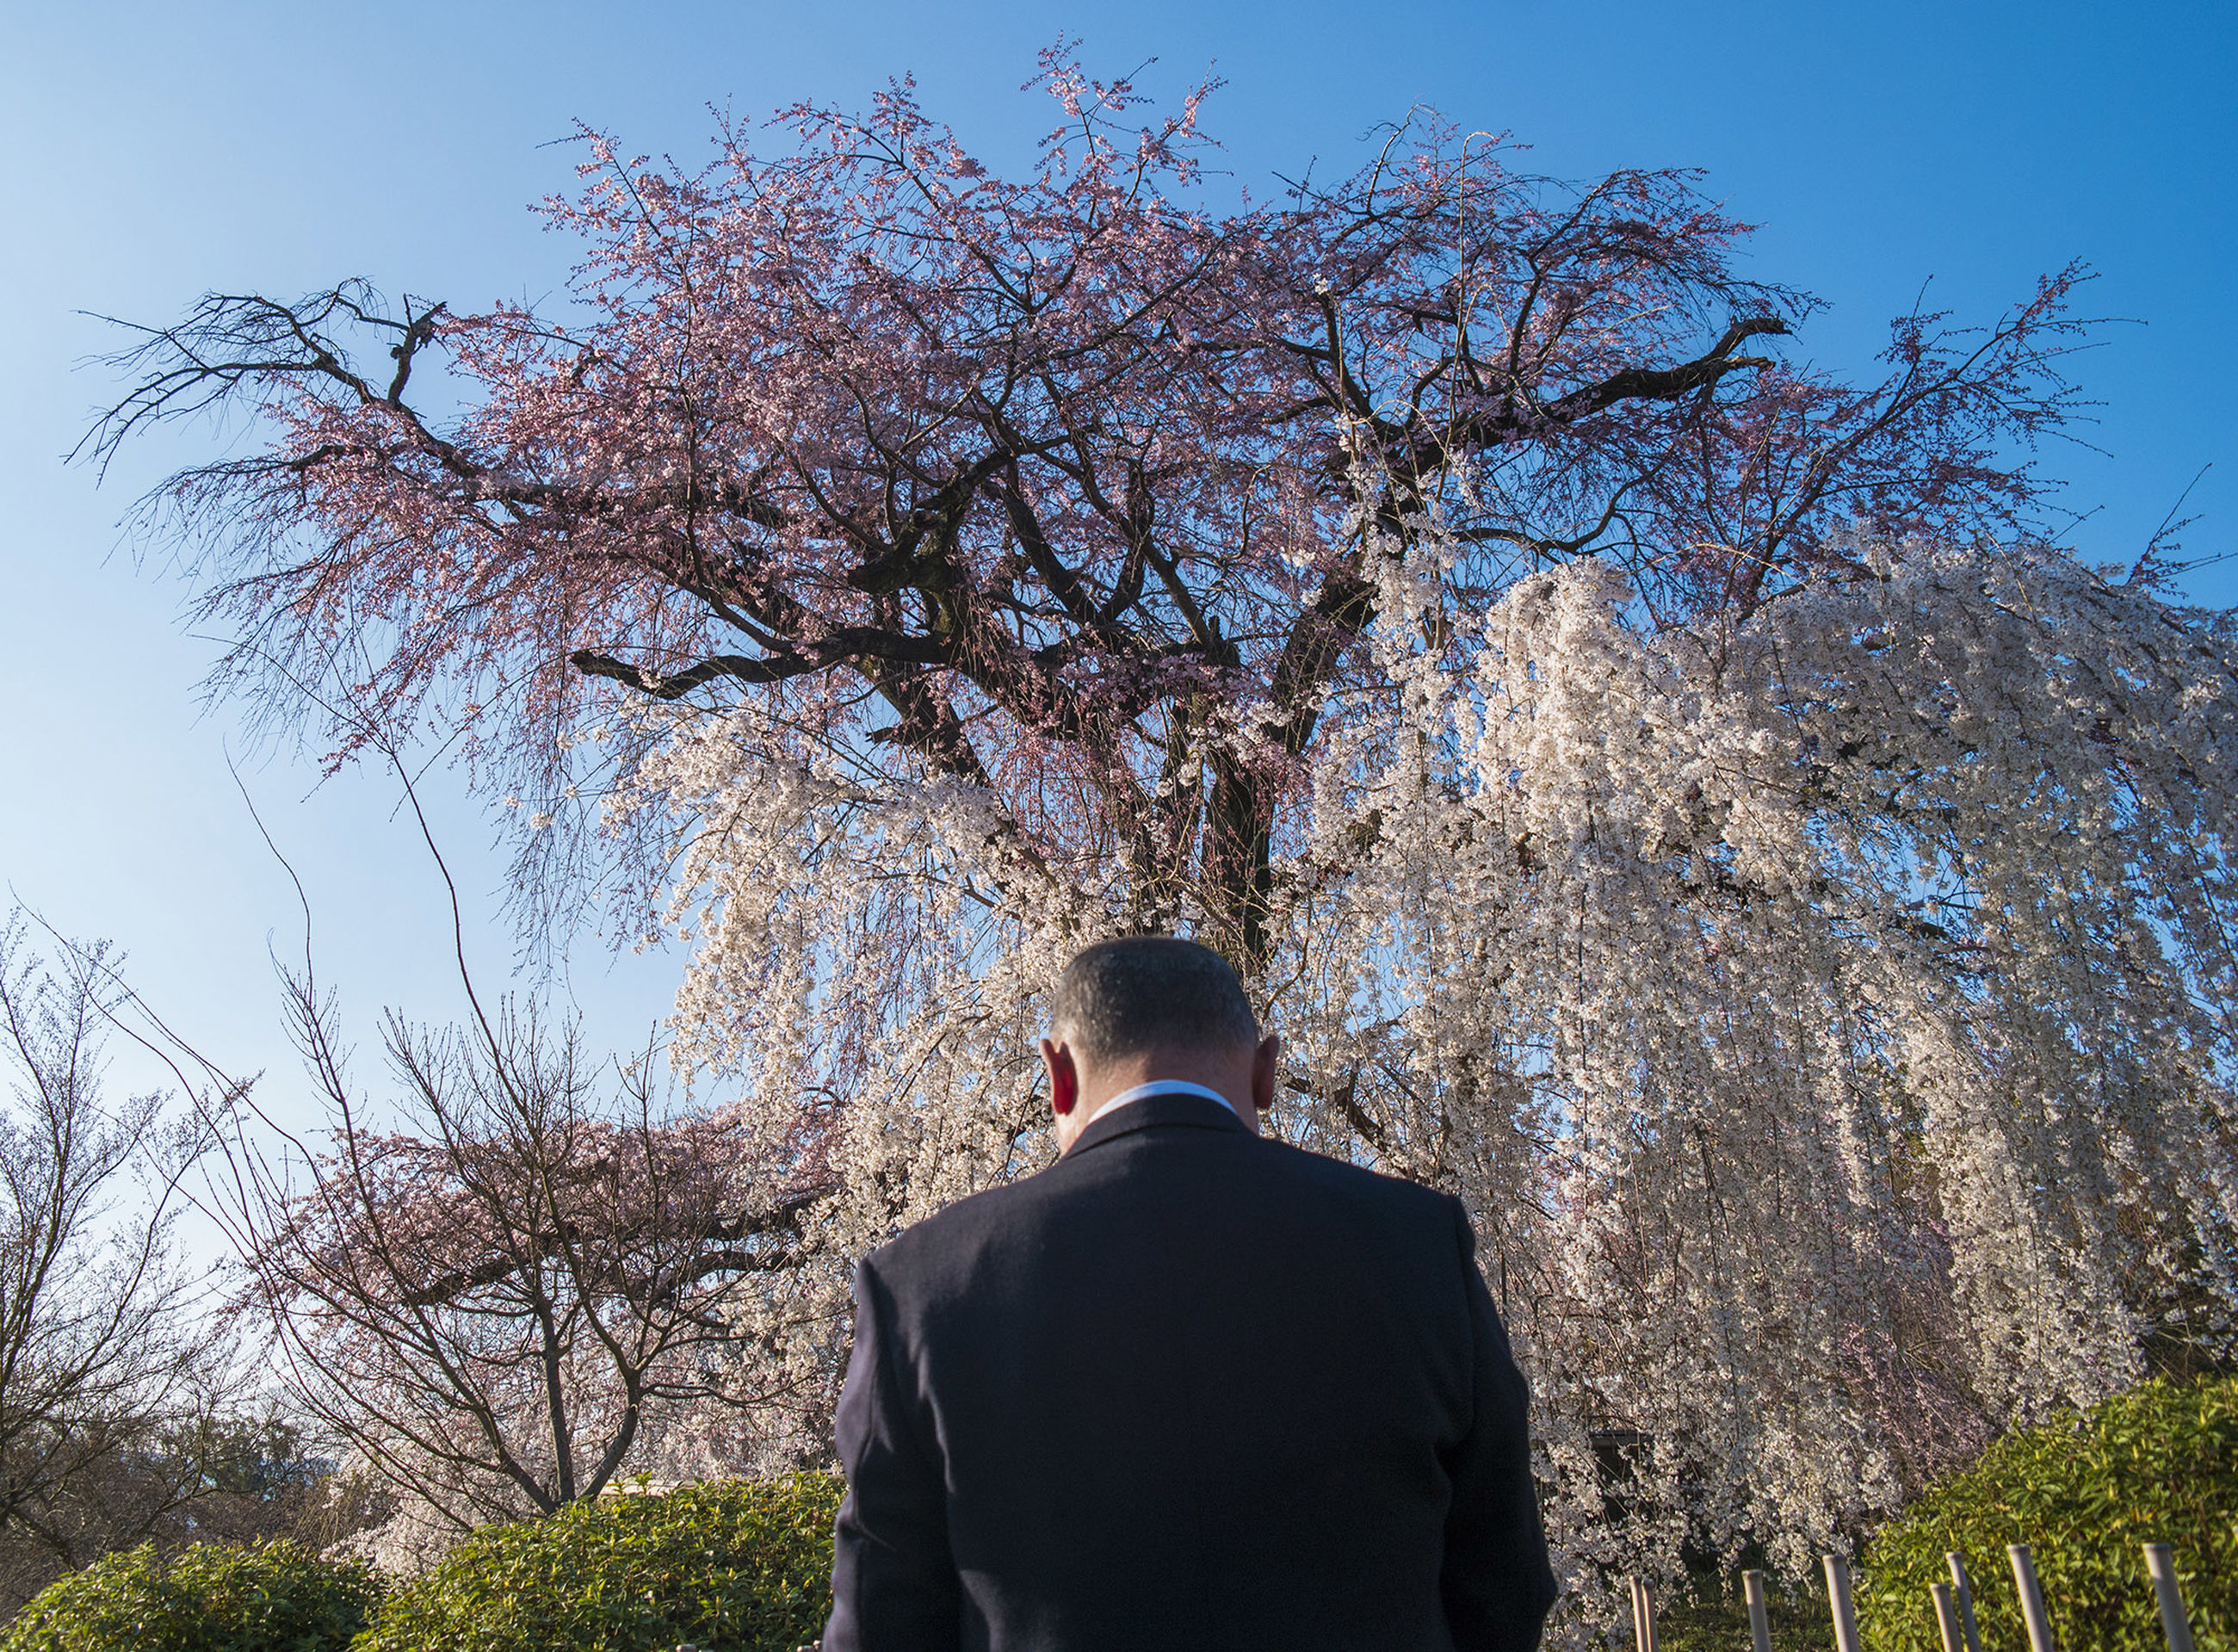 rear view, tree, plant, real people, one person, lifestyles, men, nature, leisure activity, beauty in nature, day, sky, growth, standing, flower, flowering plant, outdoors, waist up, low angle view, cherry blossom, cherry tree